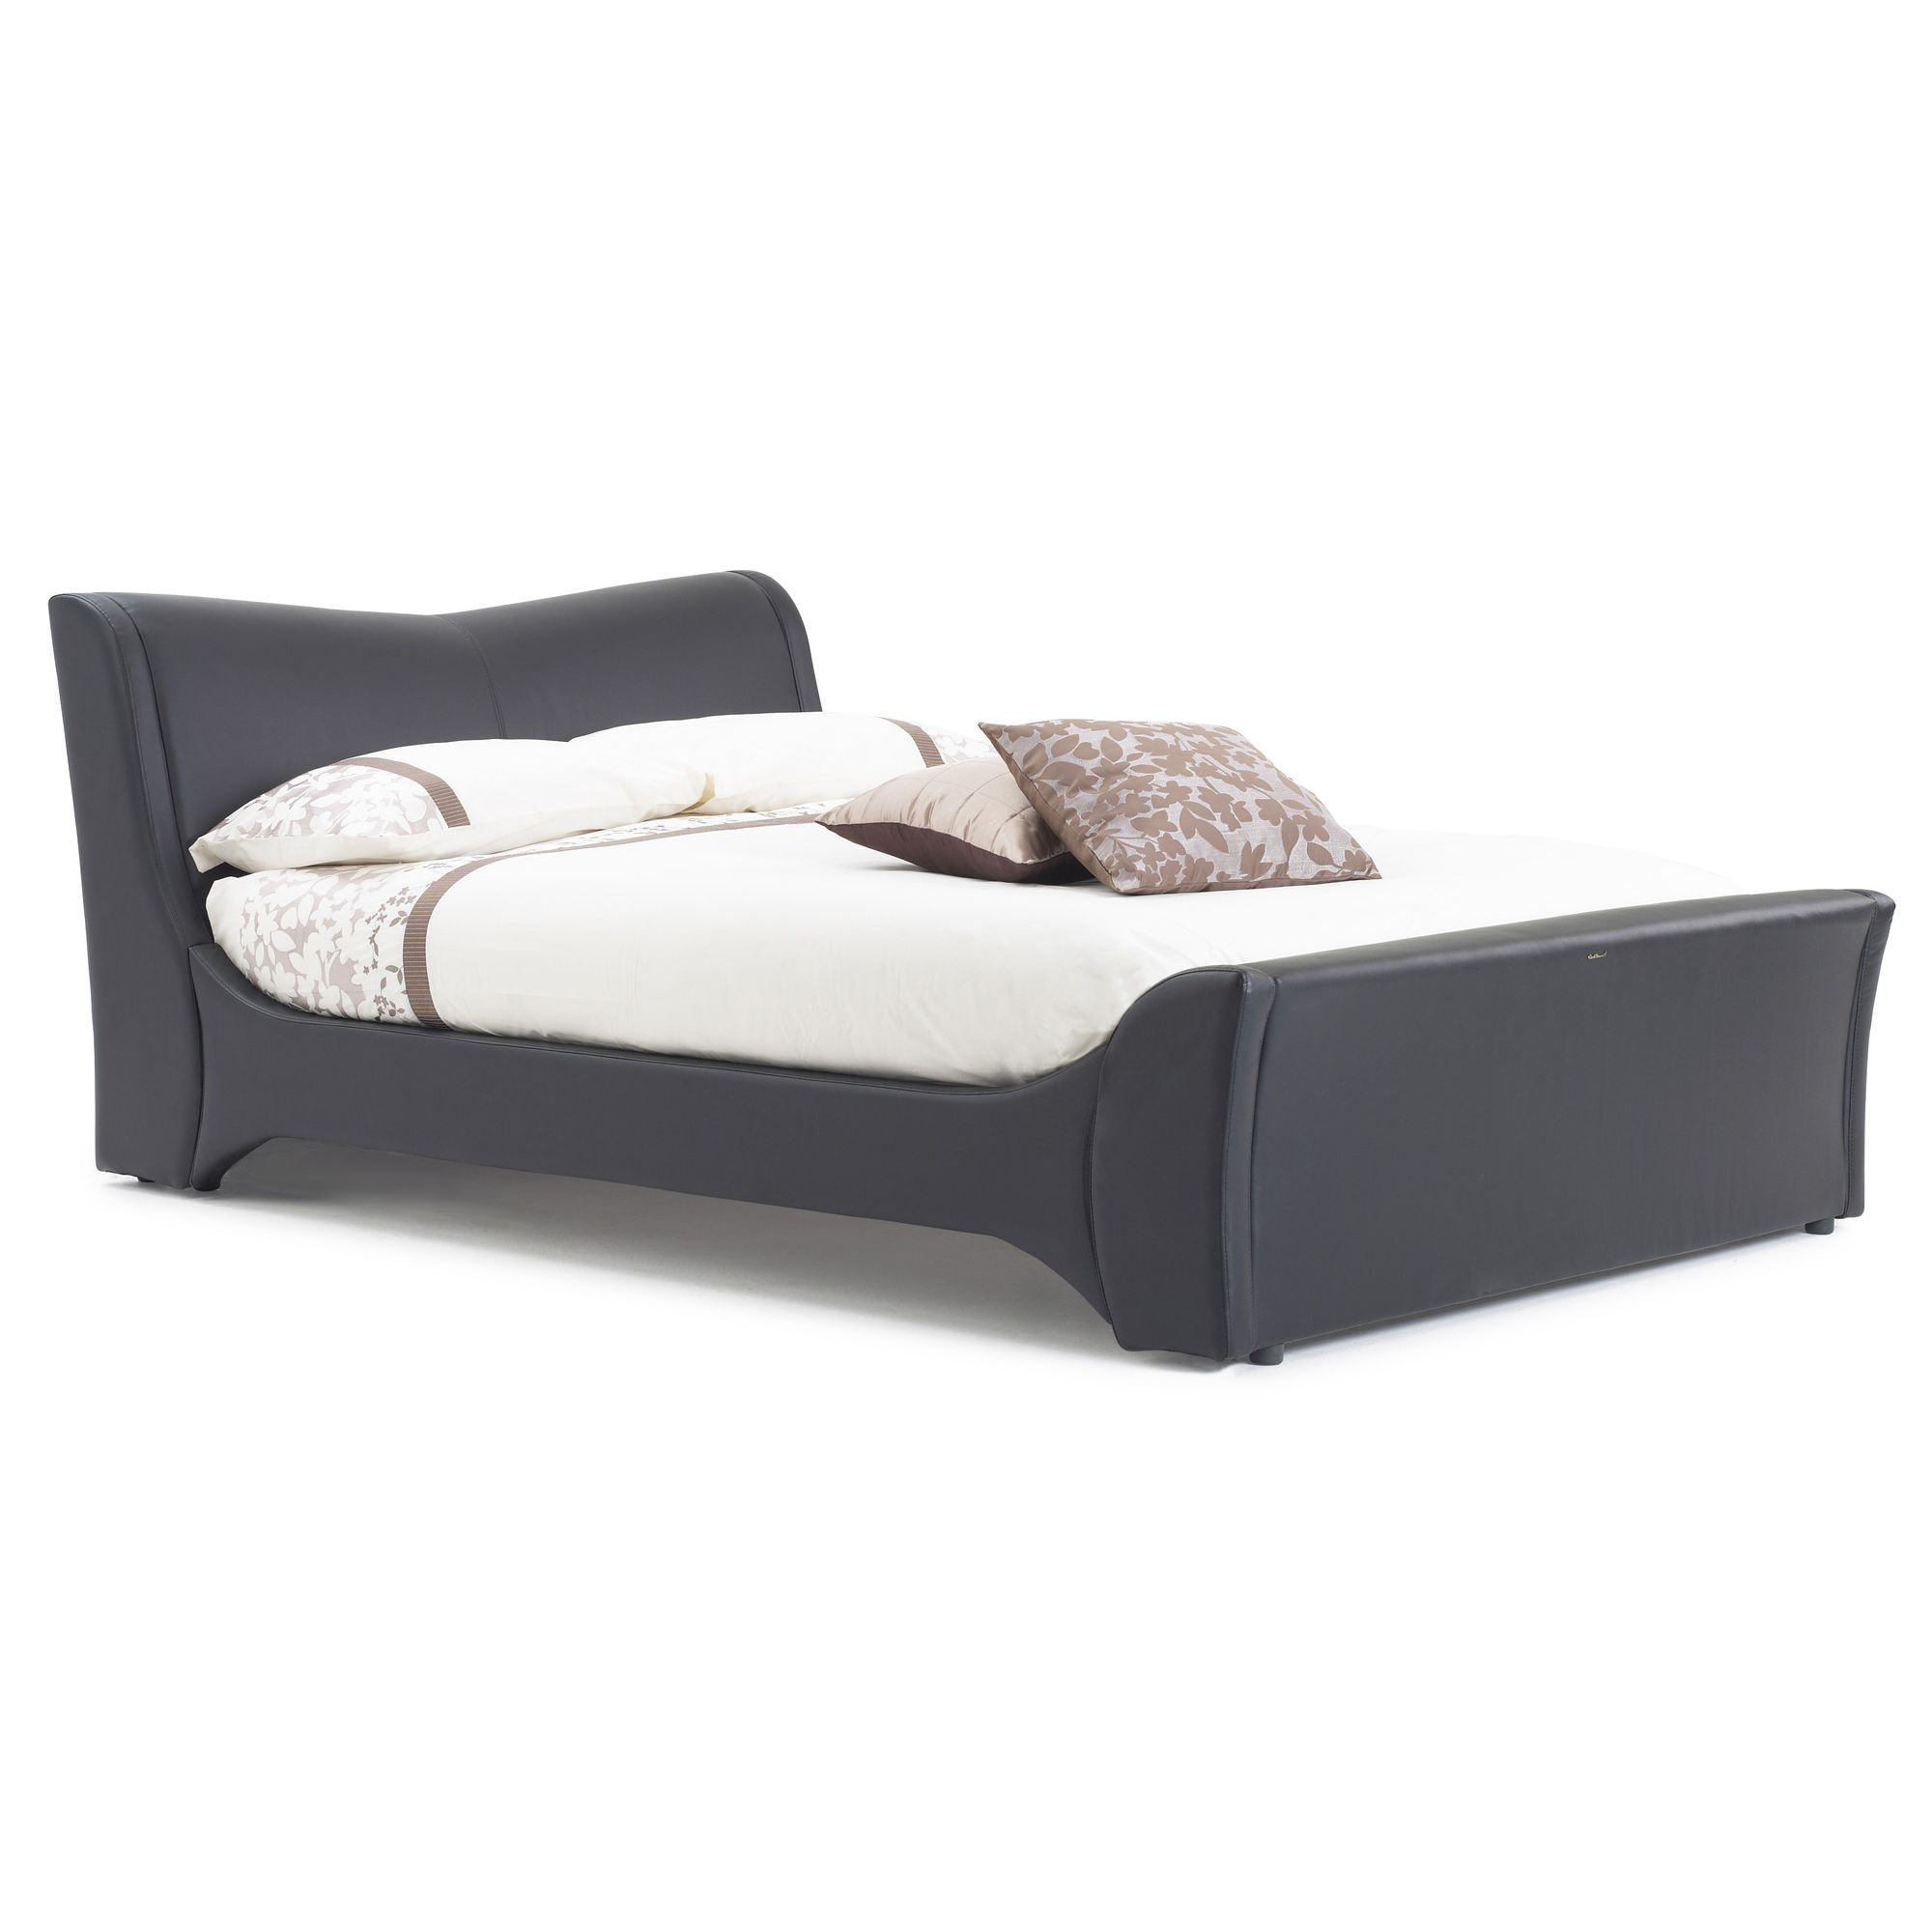 Frank Bosworth Veneto Leather Bed - Black - Double at Tesco Direct